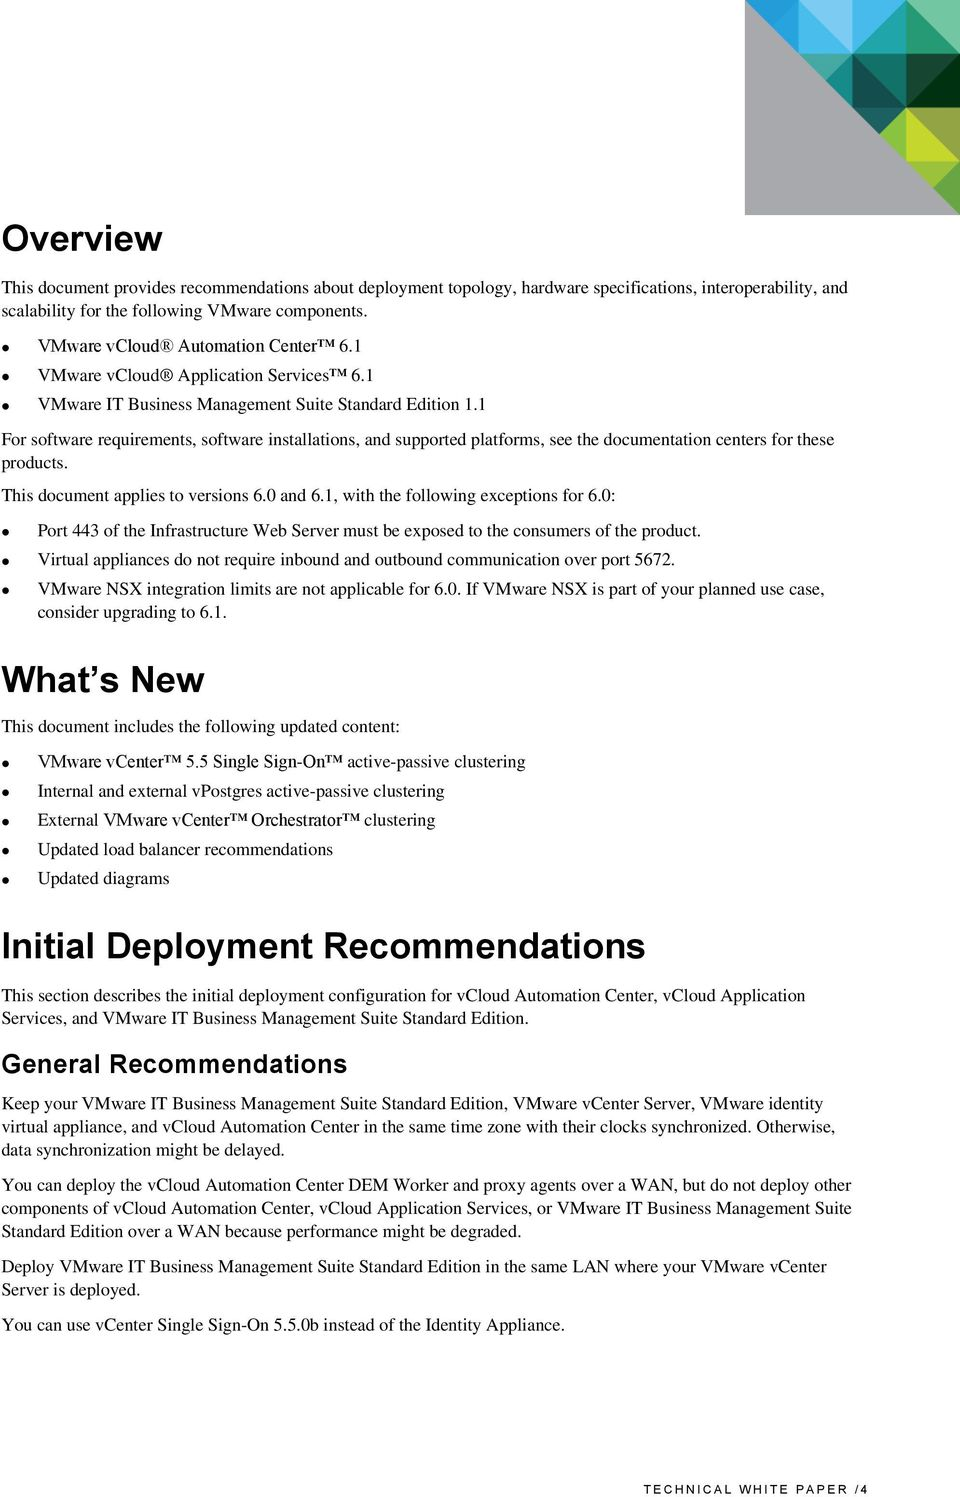 1 For software requirements, software installations, and supported platforms, see the documentation centers for these products. This document applies to versions 6.0 and 6.